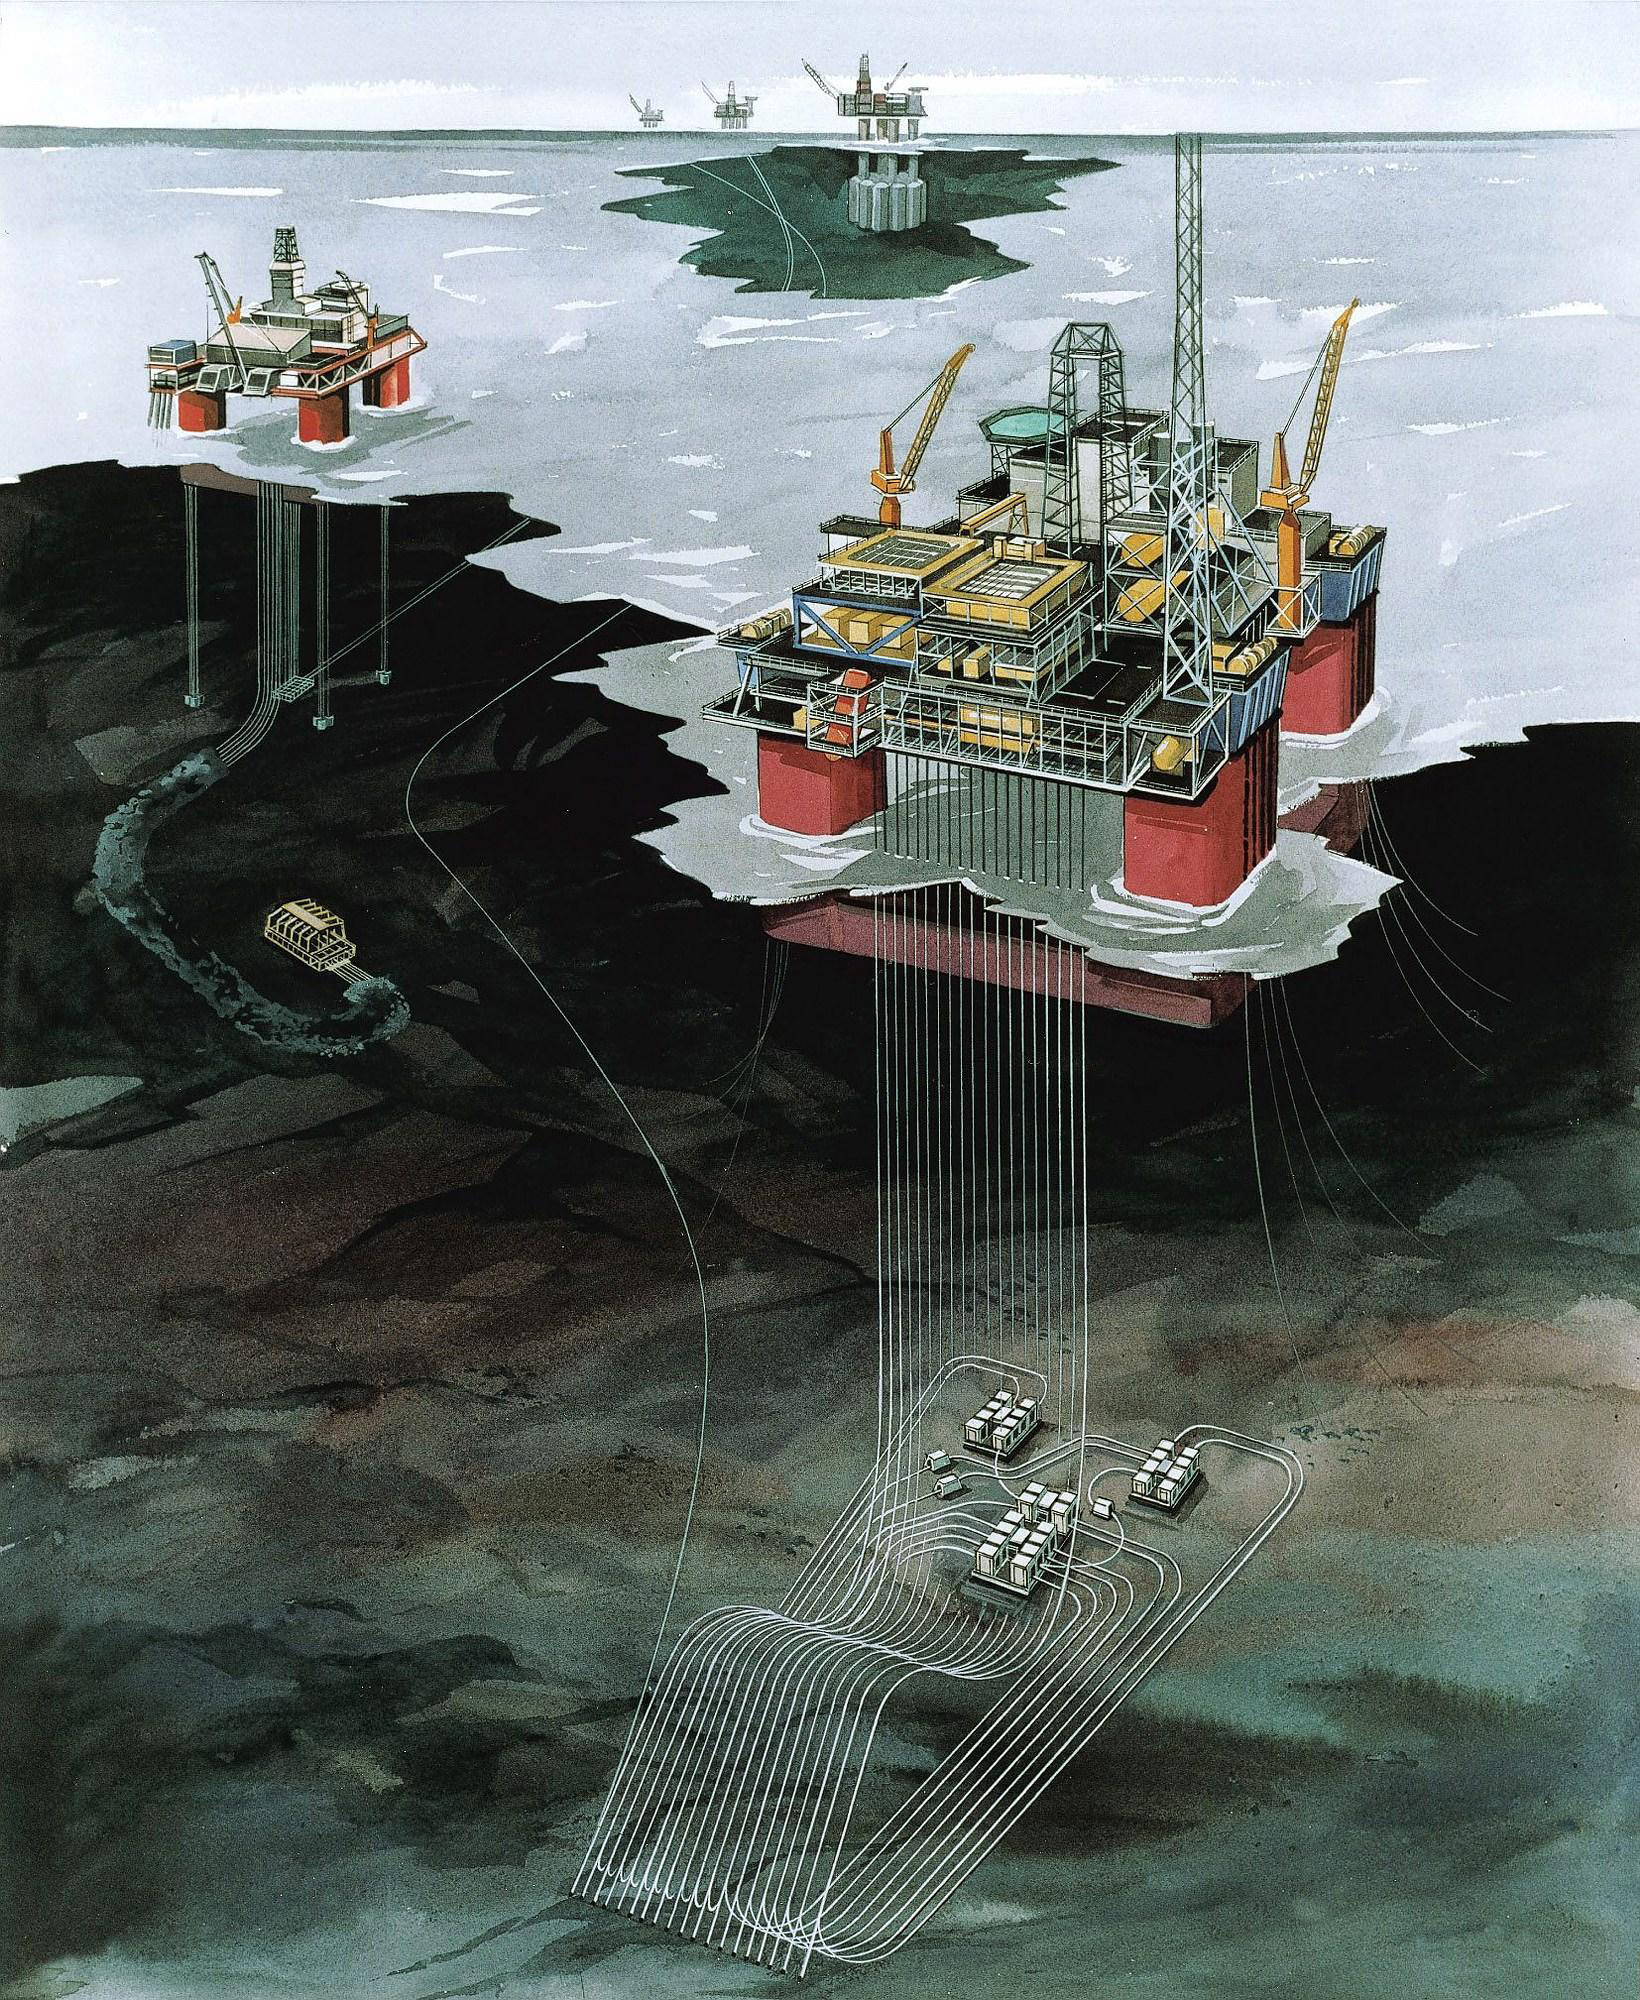 Snorre oil and gas field (Image: Statoil)